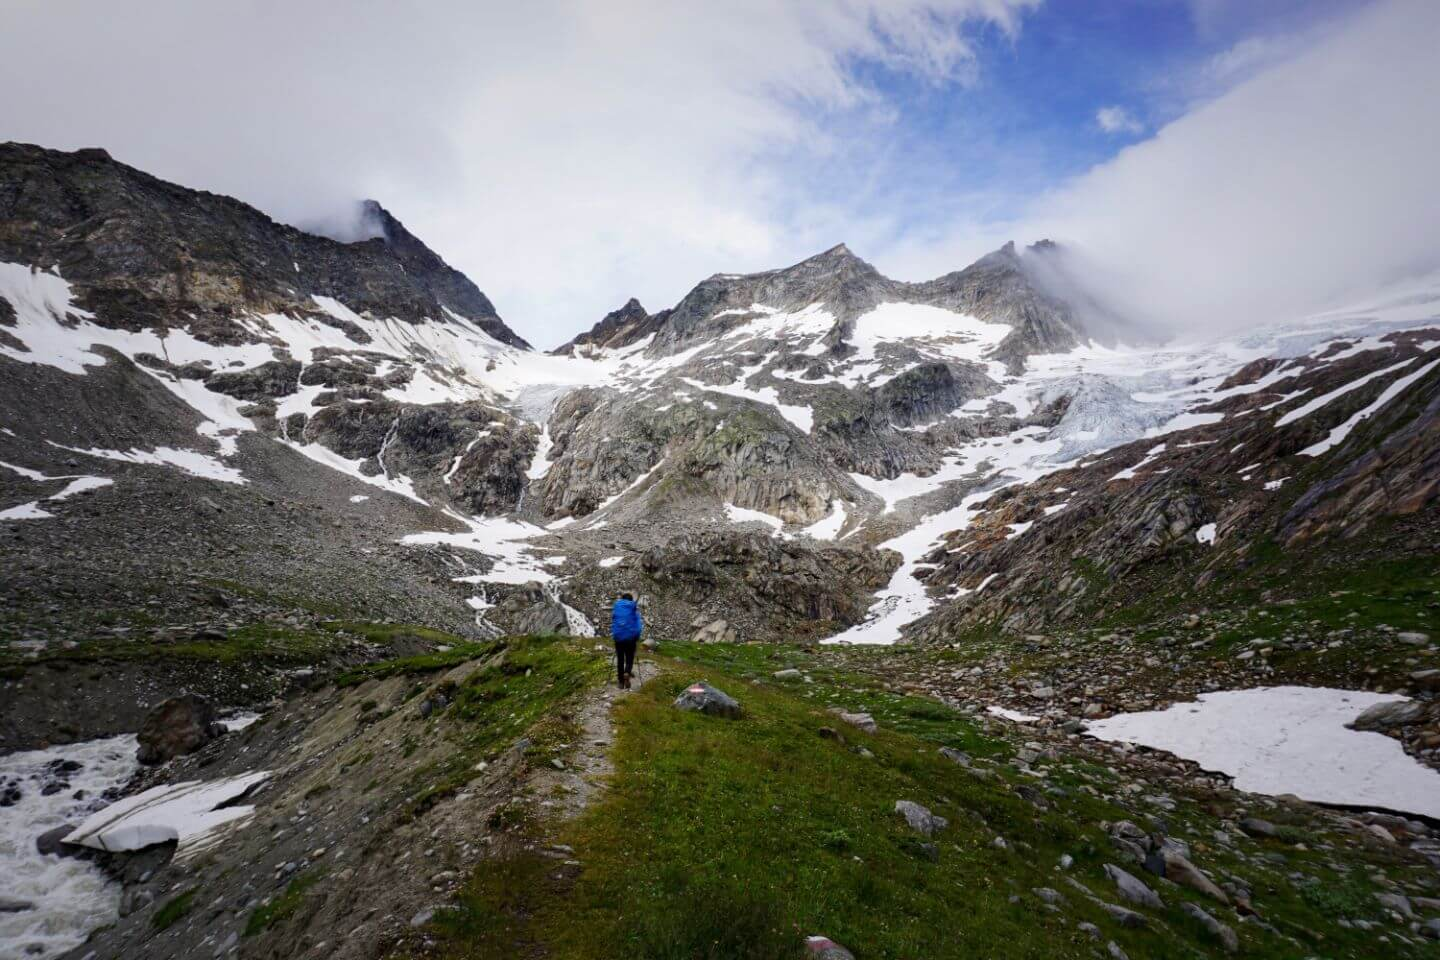 Trail to Simonysee - Venediger High Trail, East Tyrol, Hohe Tauern National Park, Austria